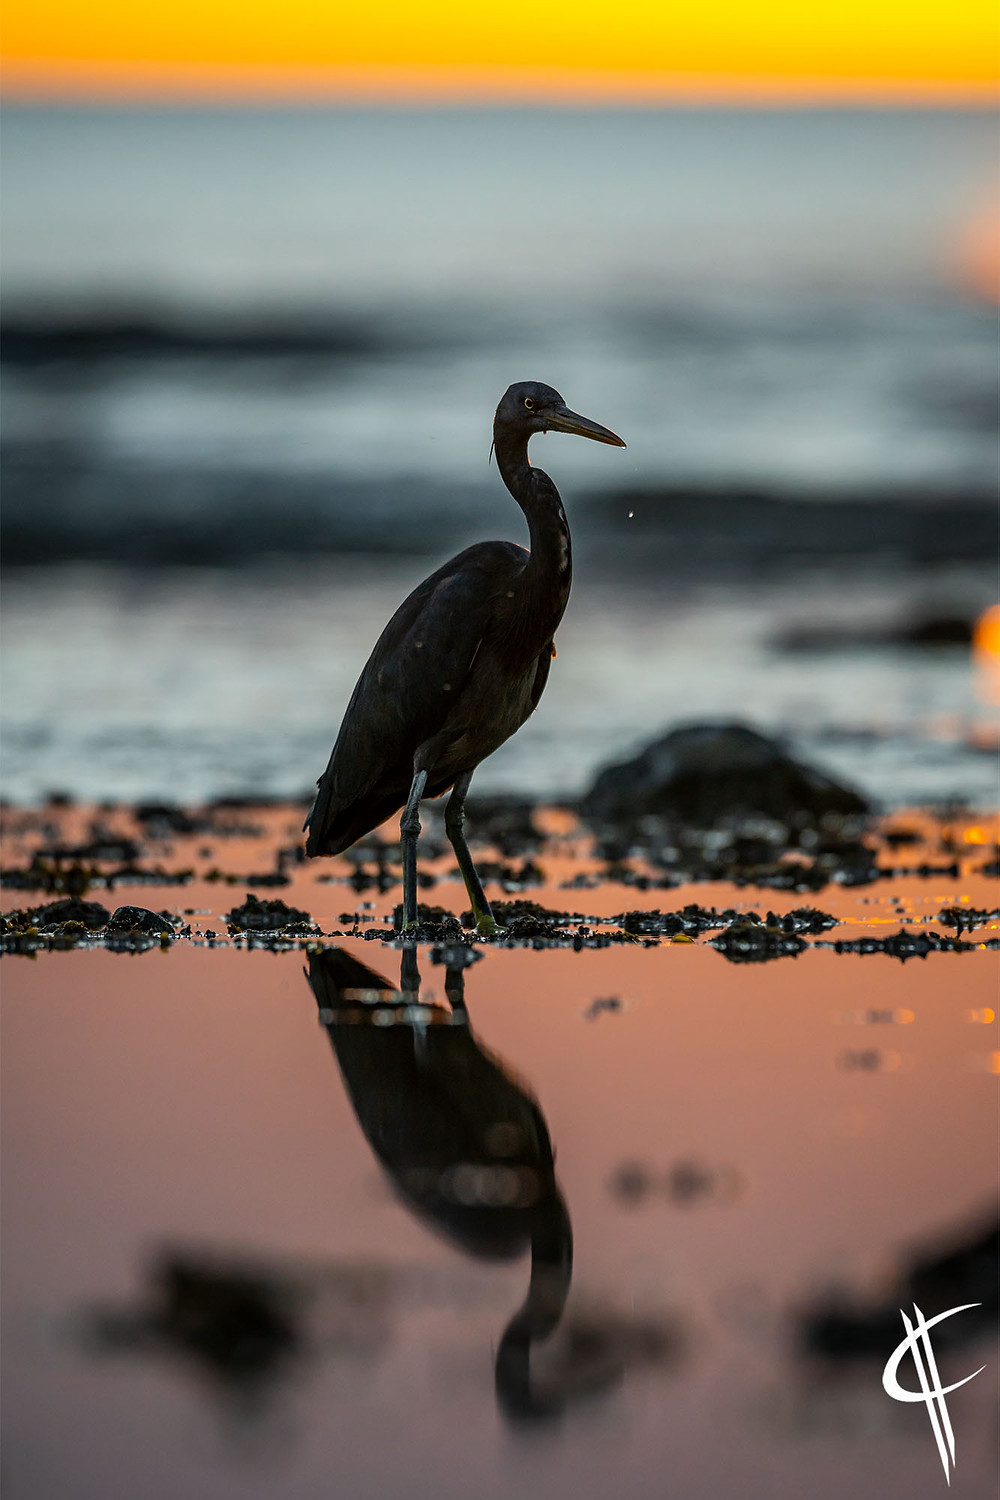 Reef Egret in the sunset